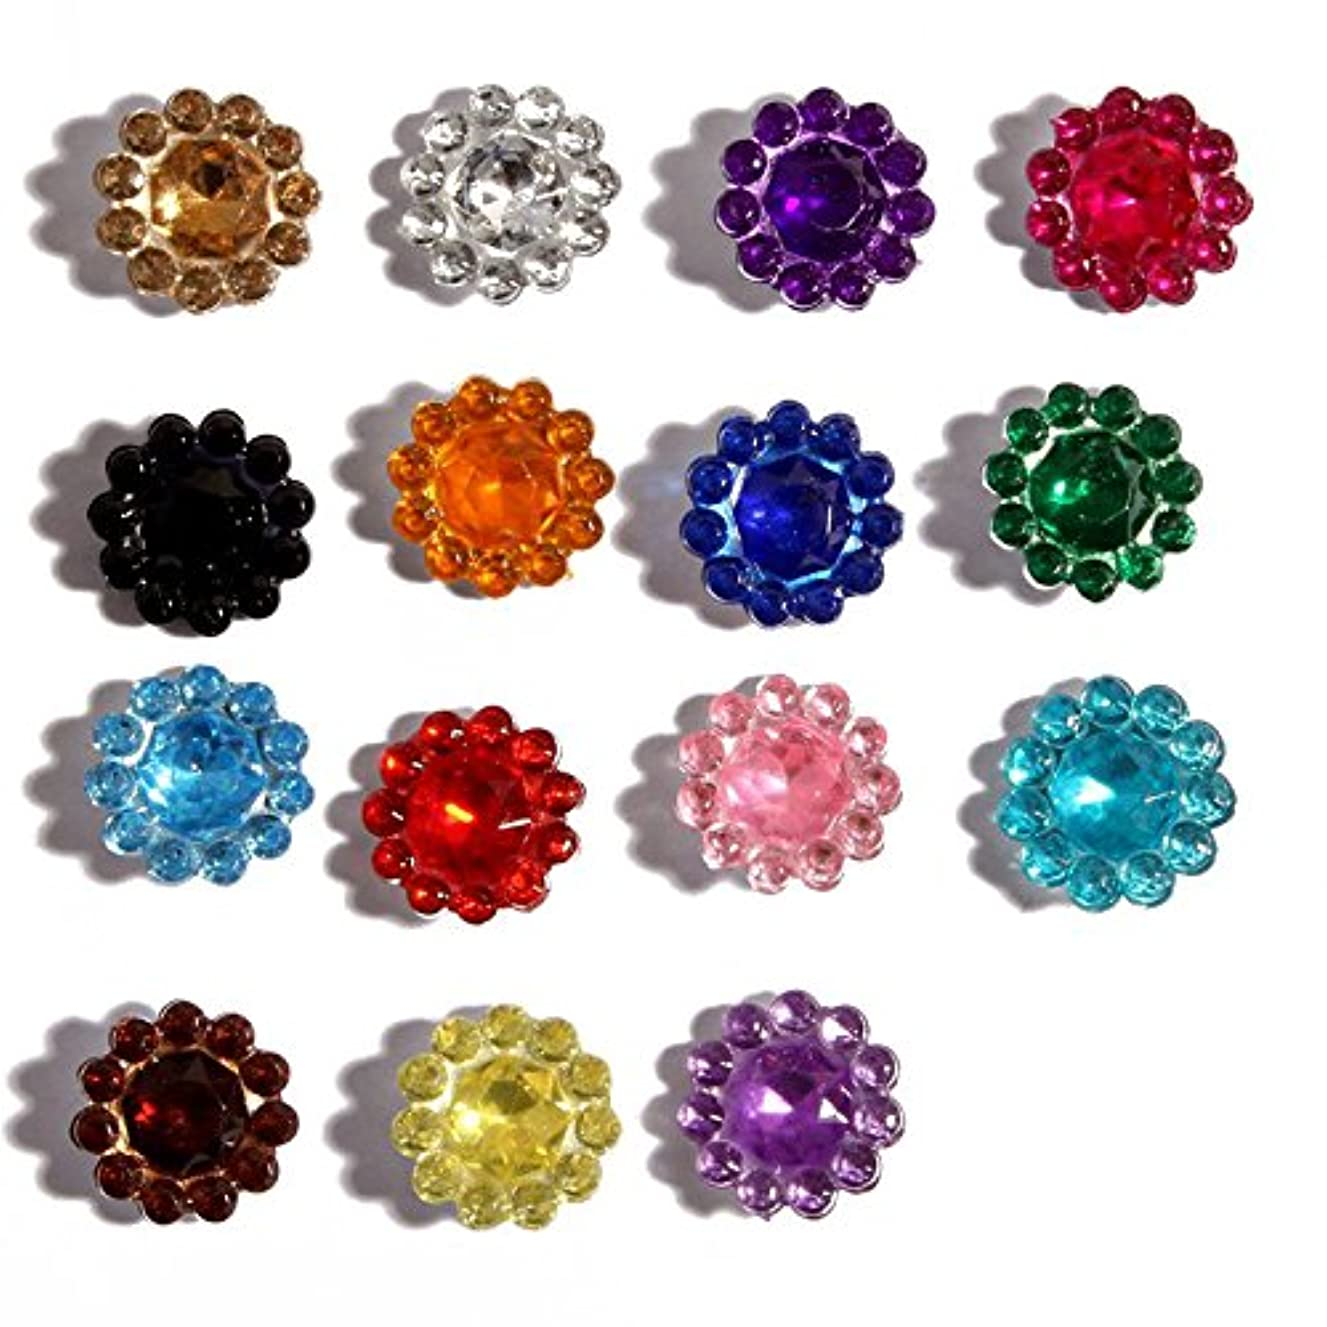 Masokan Mini Point Back Flower Acrylic Rhinestones Gemstone Embellishment for DIY Craft Supplies (0.44 Inches Diameter, Mix 15 Colors, Pack of 1000 PCS)